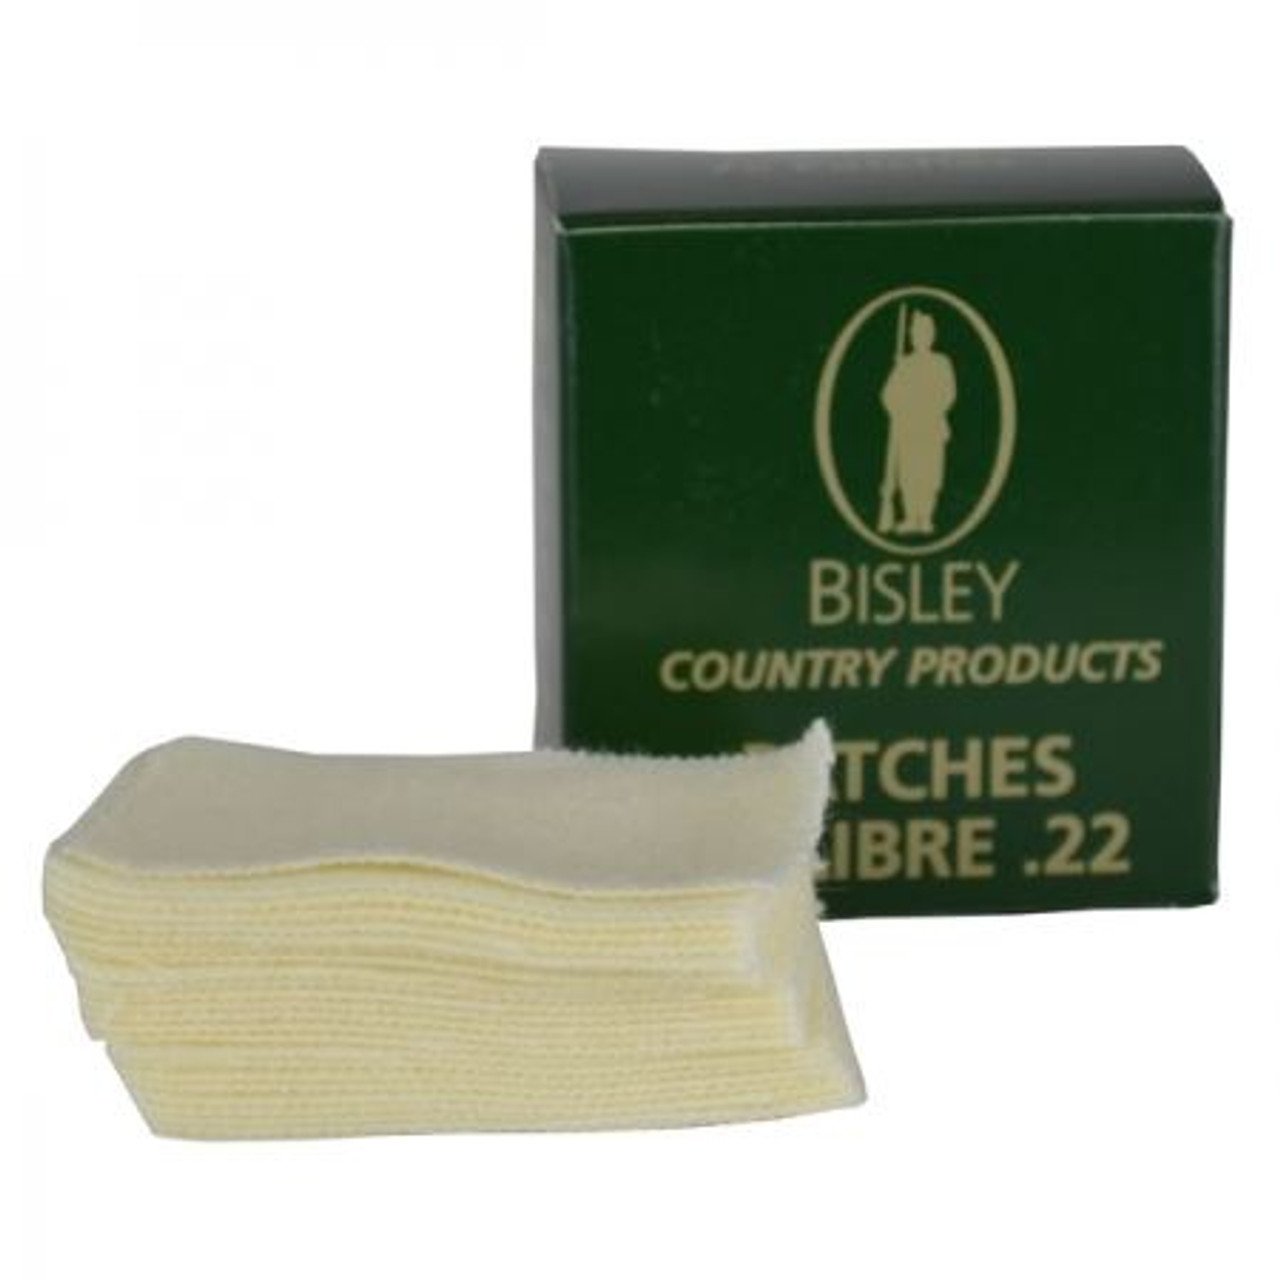 Bisley .22 Rifle Cleaning Patches